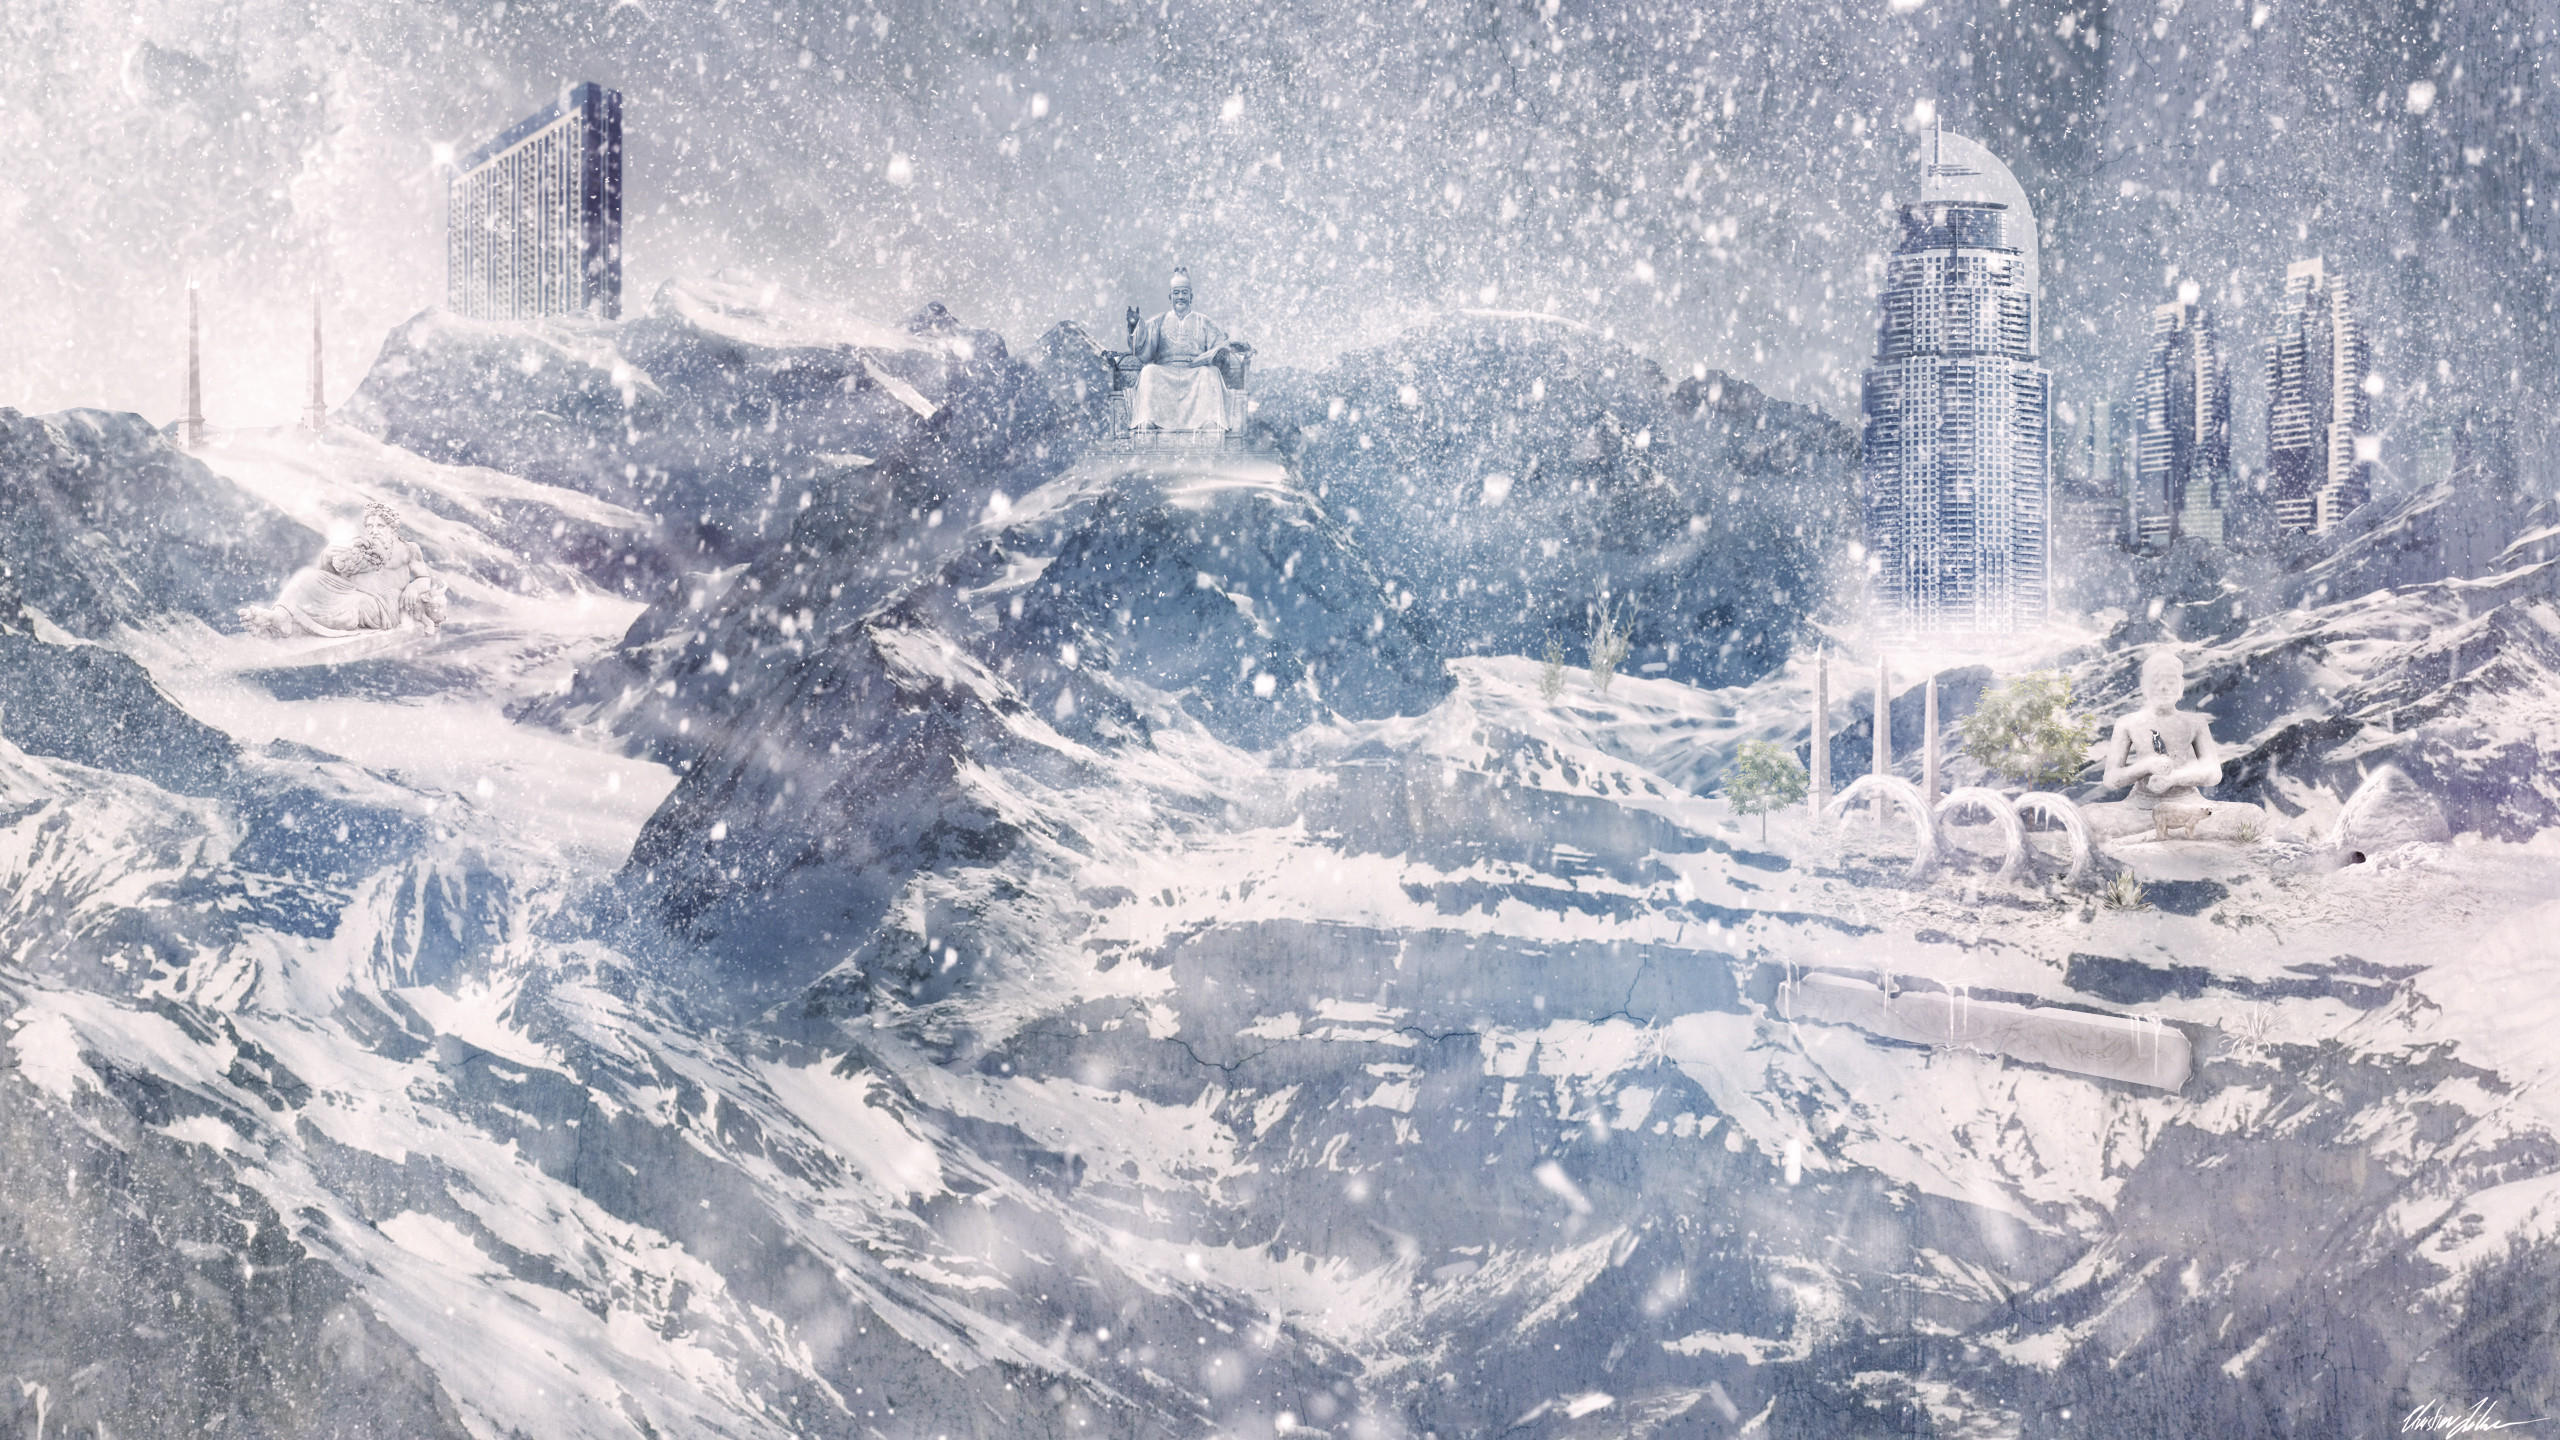 Winter Blizzard Wallpaper 2560x1440